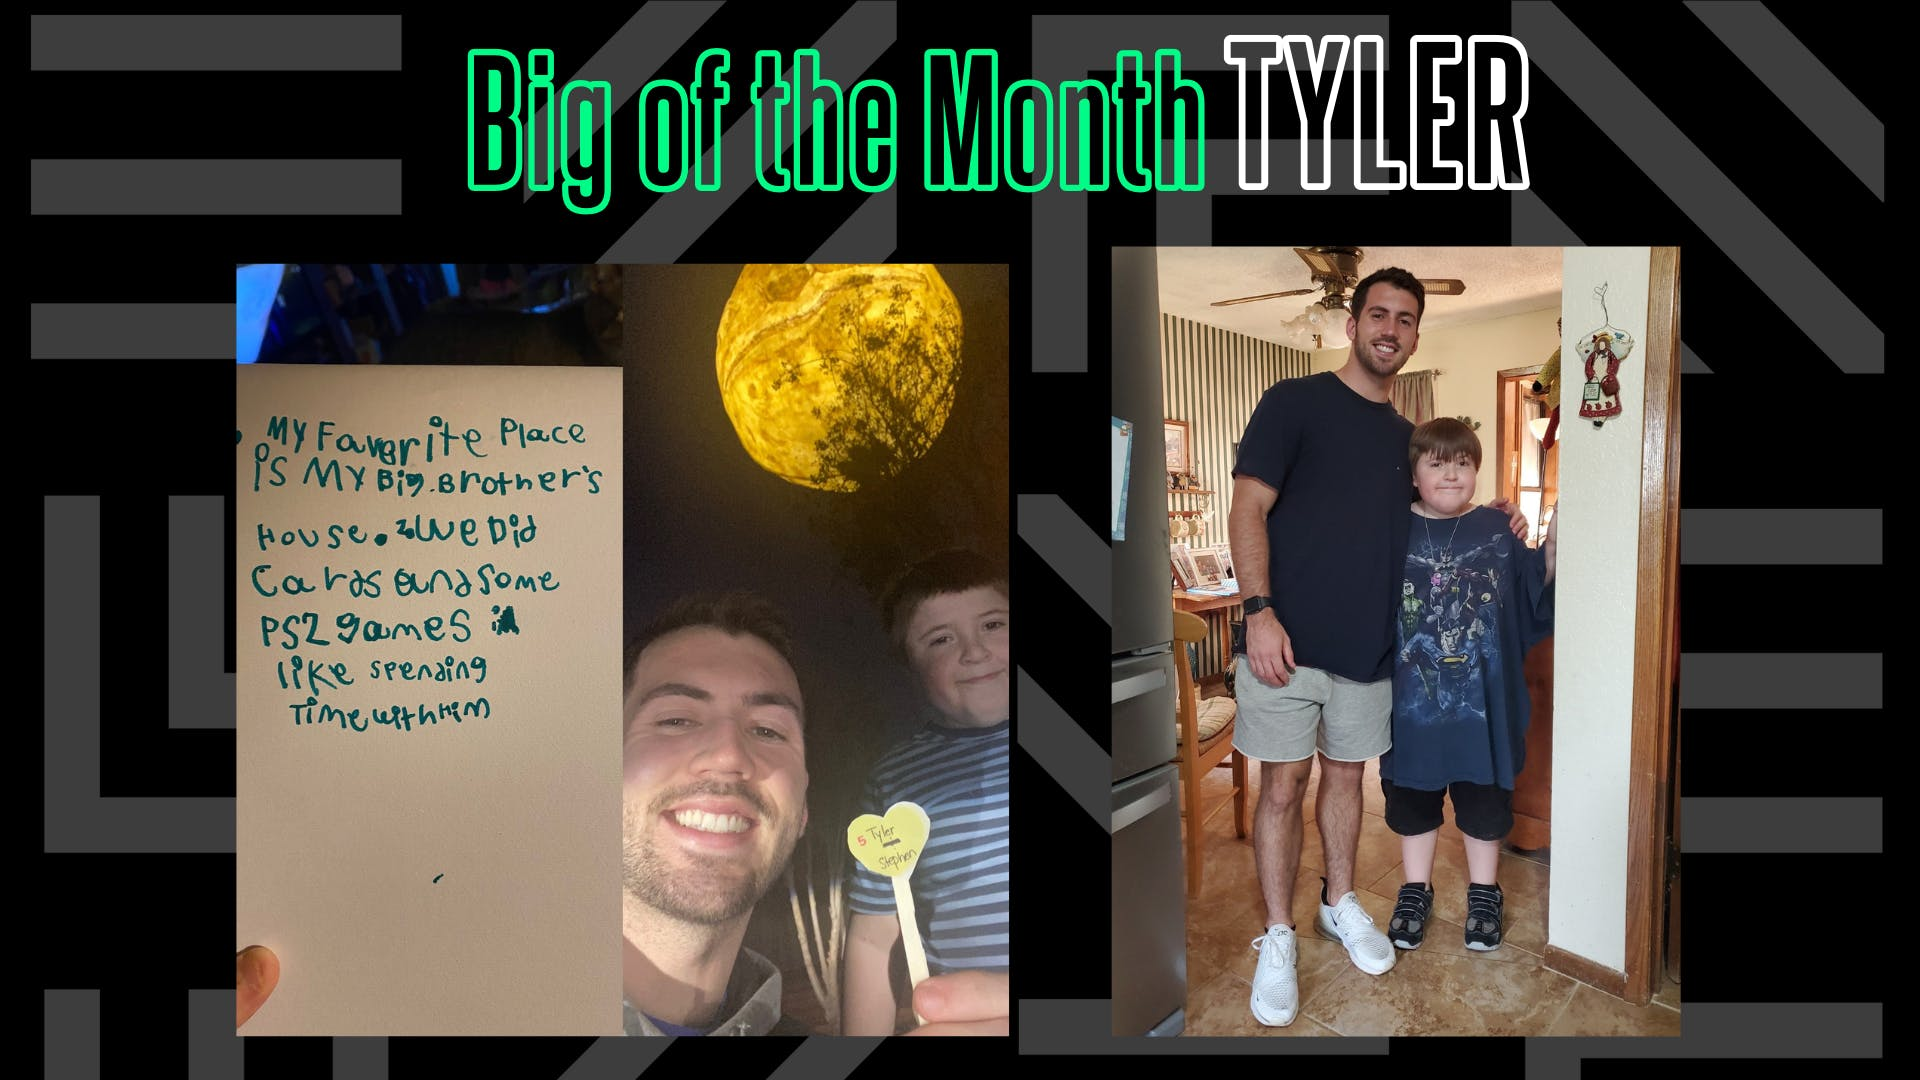 Tyler Baker - August 2021 Big of the Month cover image